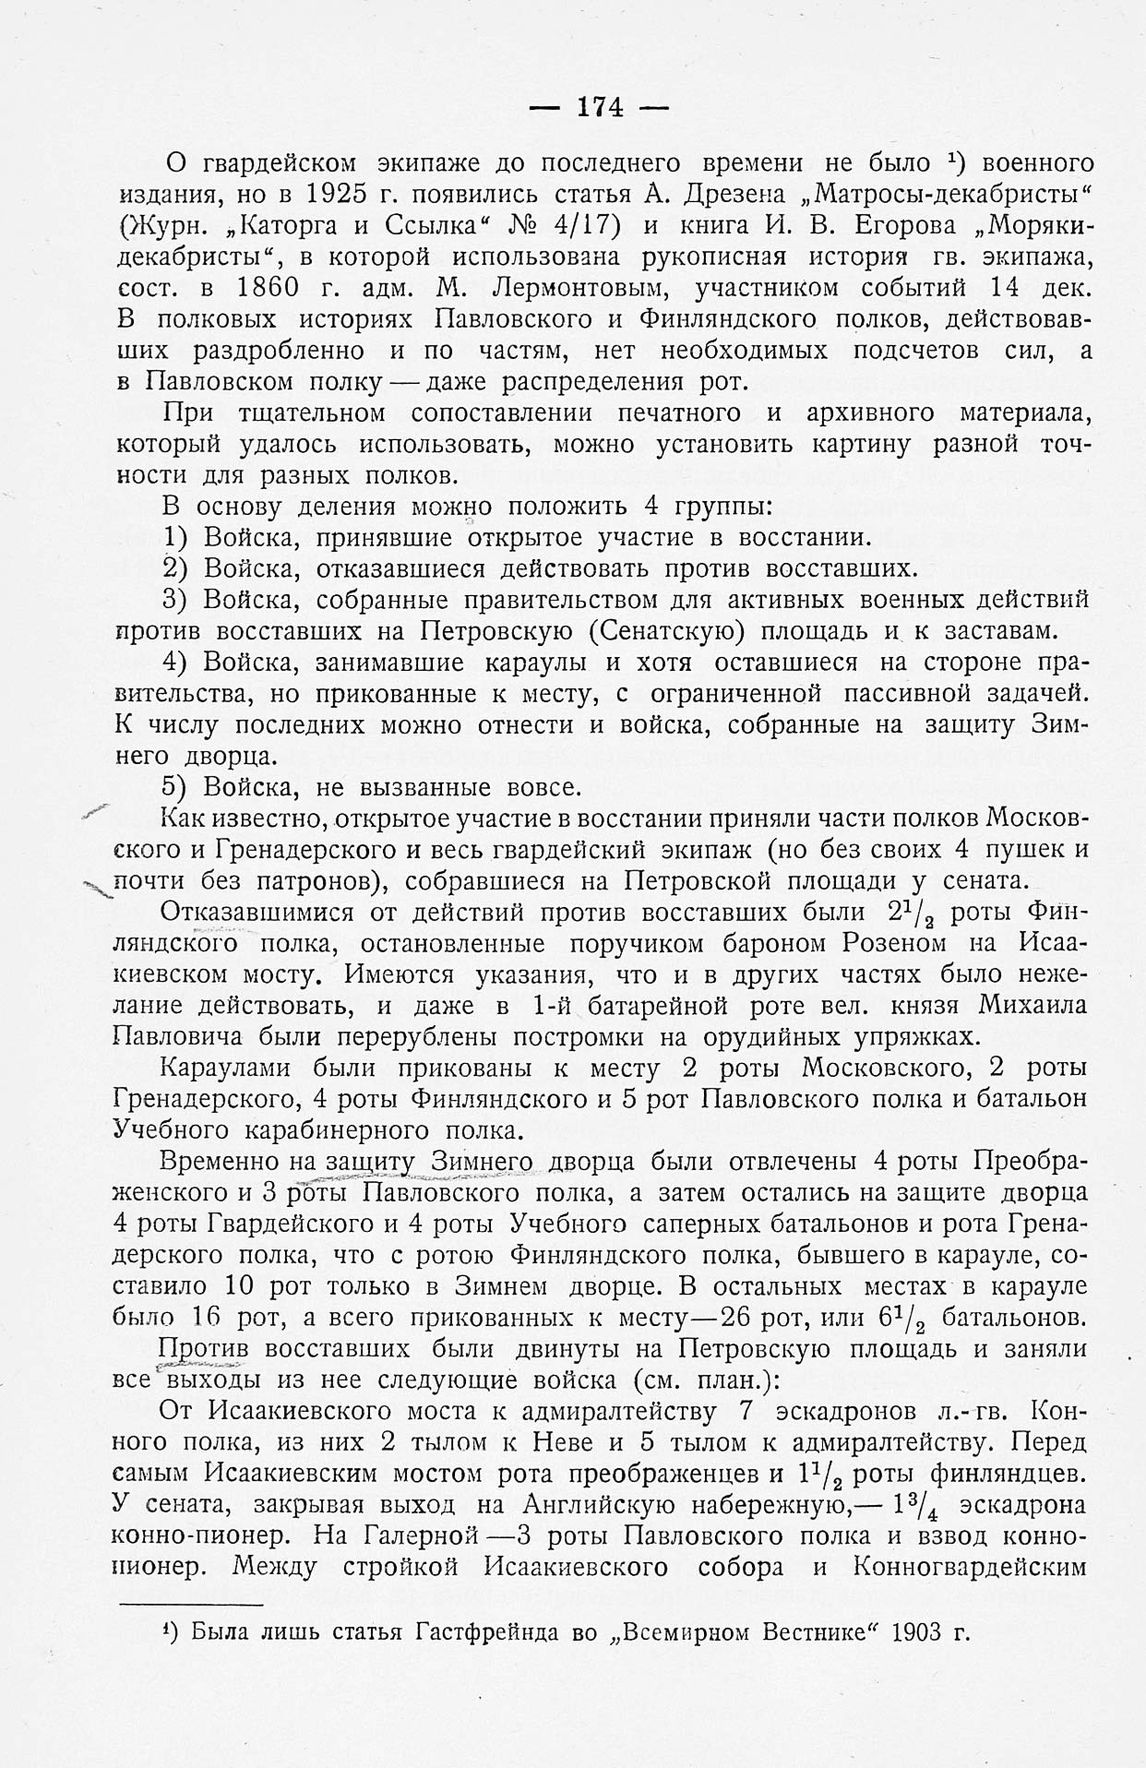 http://elib.shpl.ru/pages/566071/zooms/7